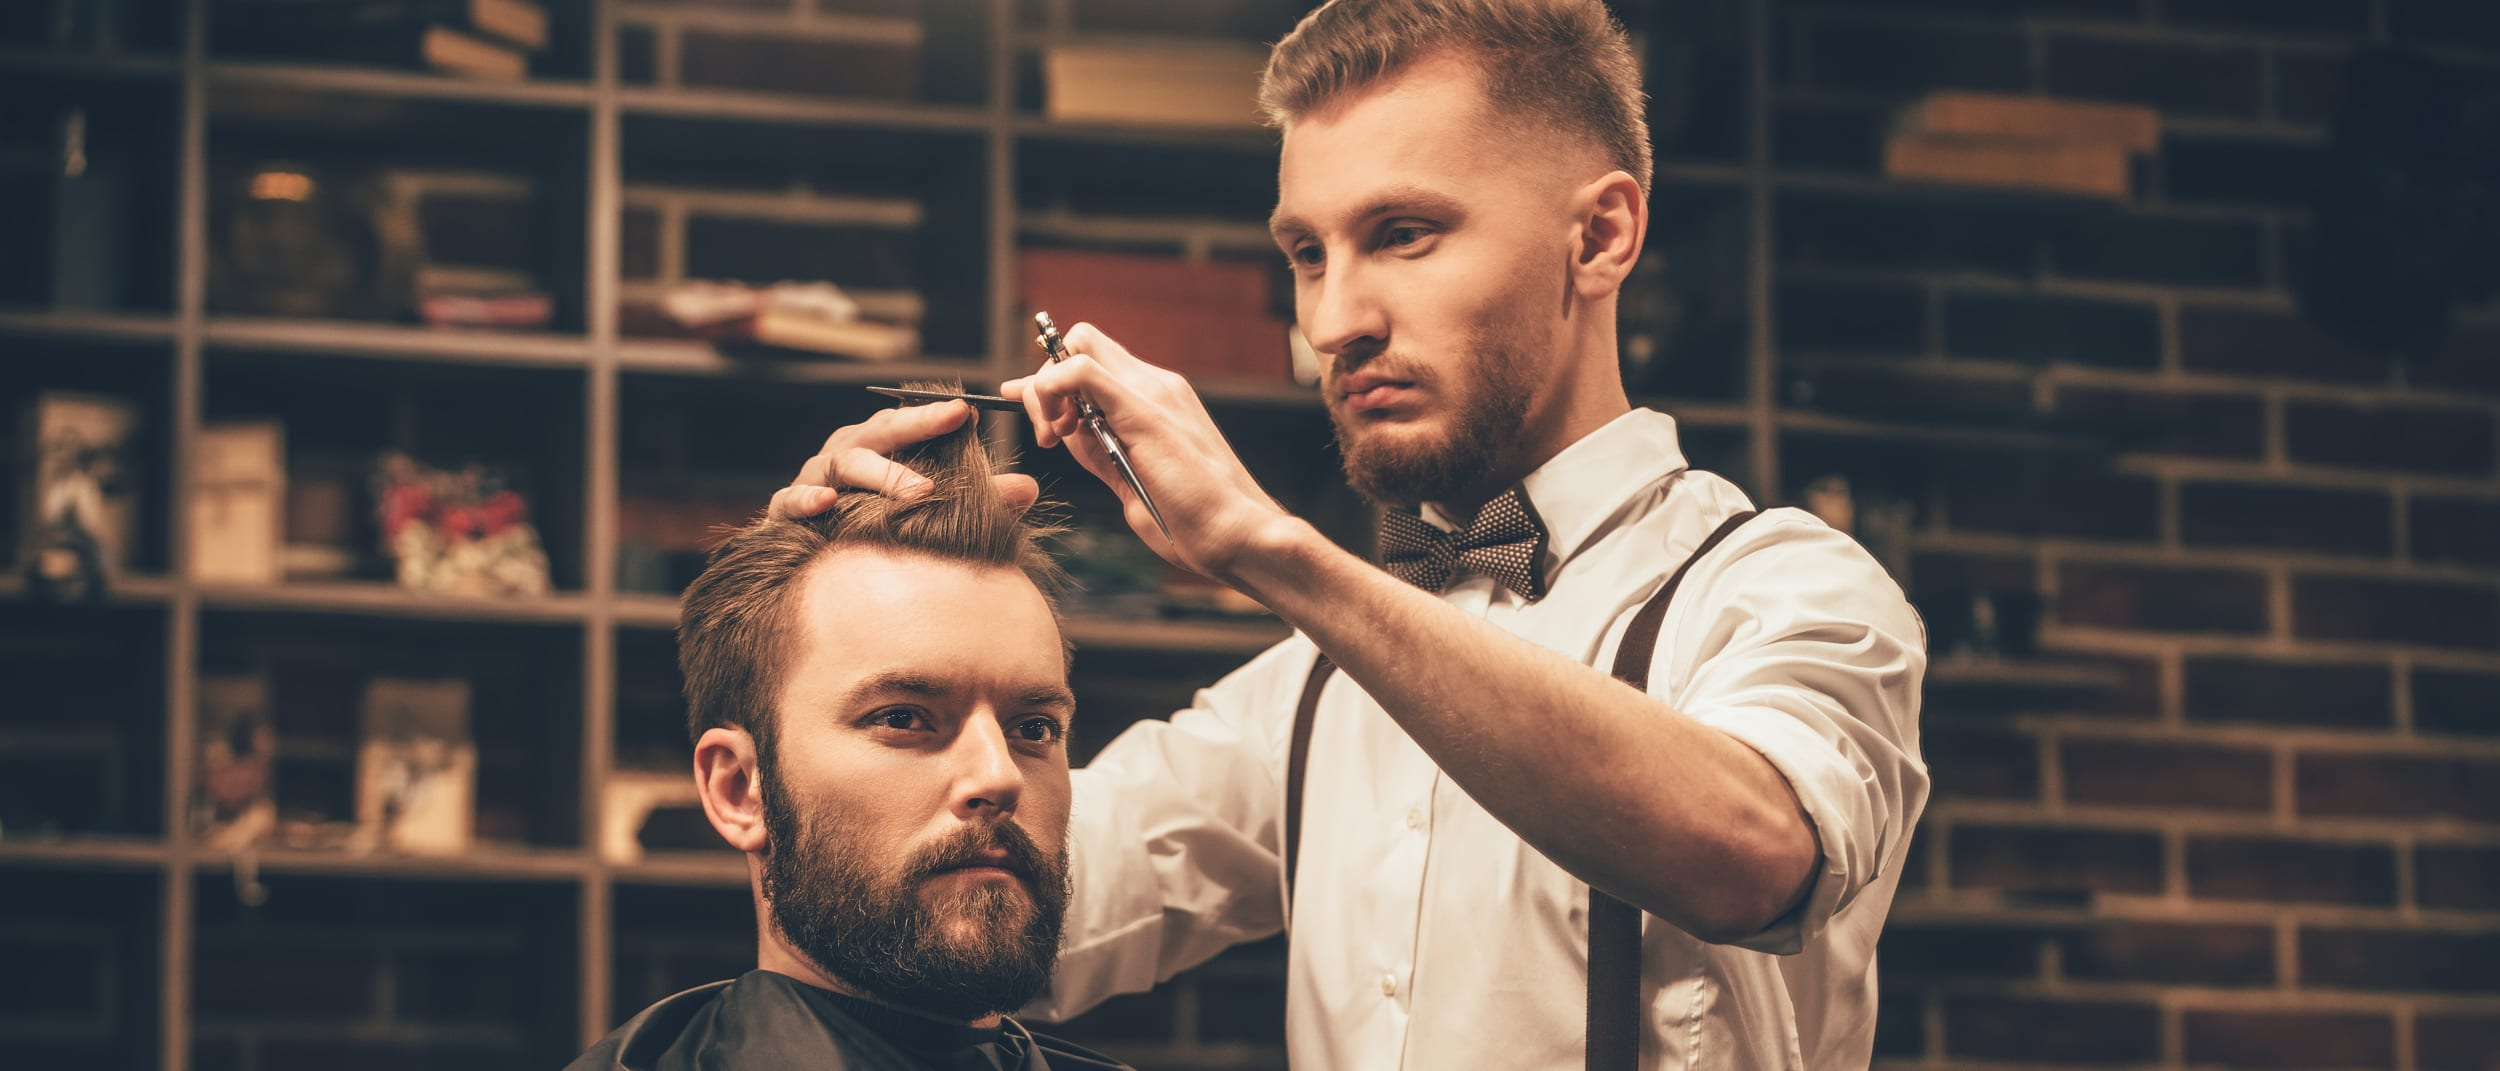 The guide to the perfect fade